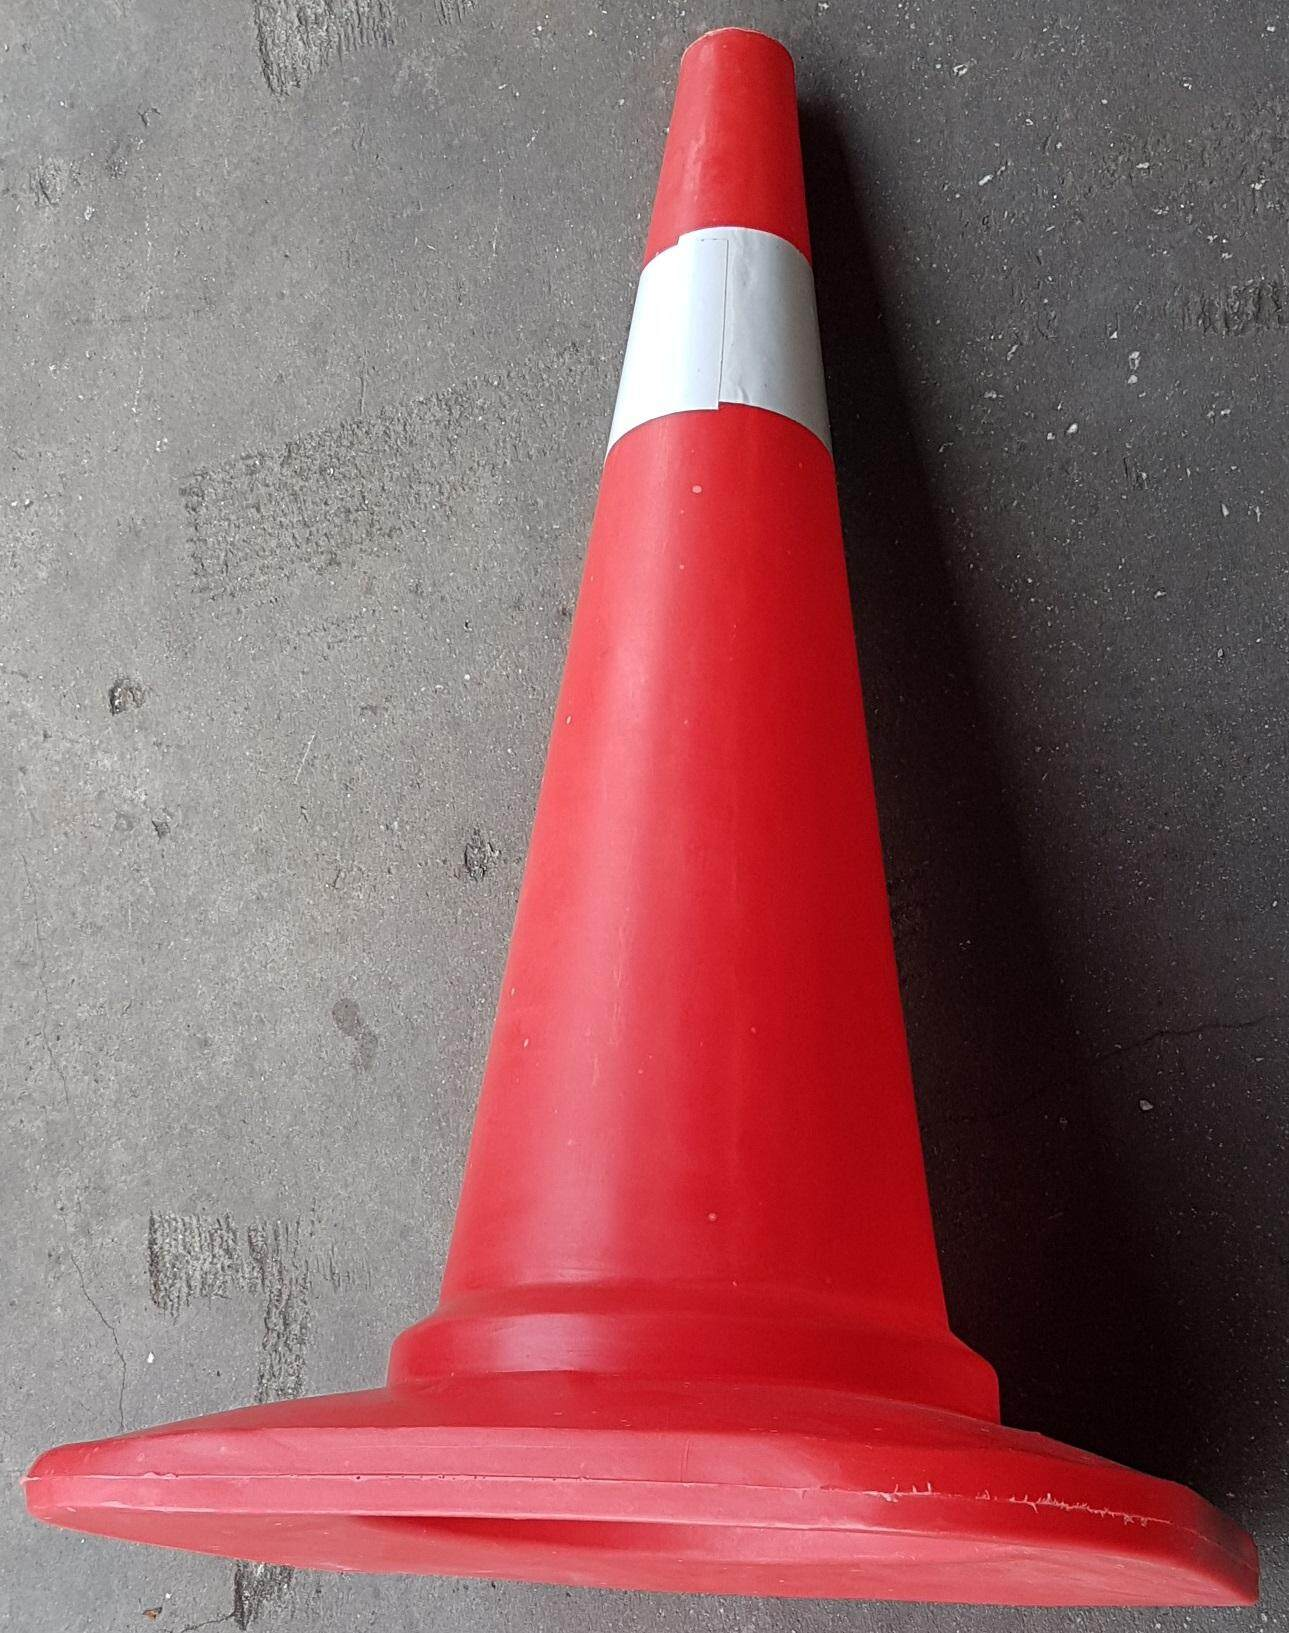 30   inch safety cone stand safe lift jack floor high look hole construction fit center road block repair blocking